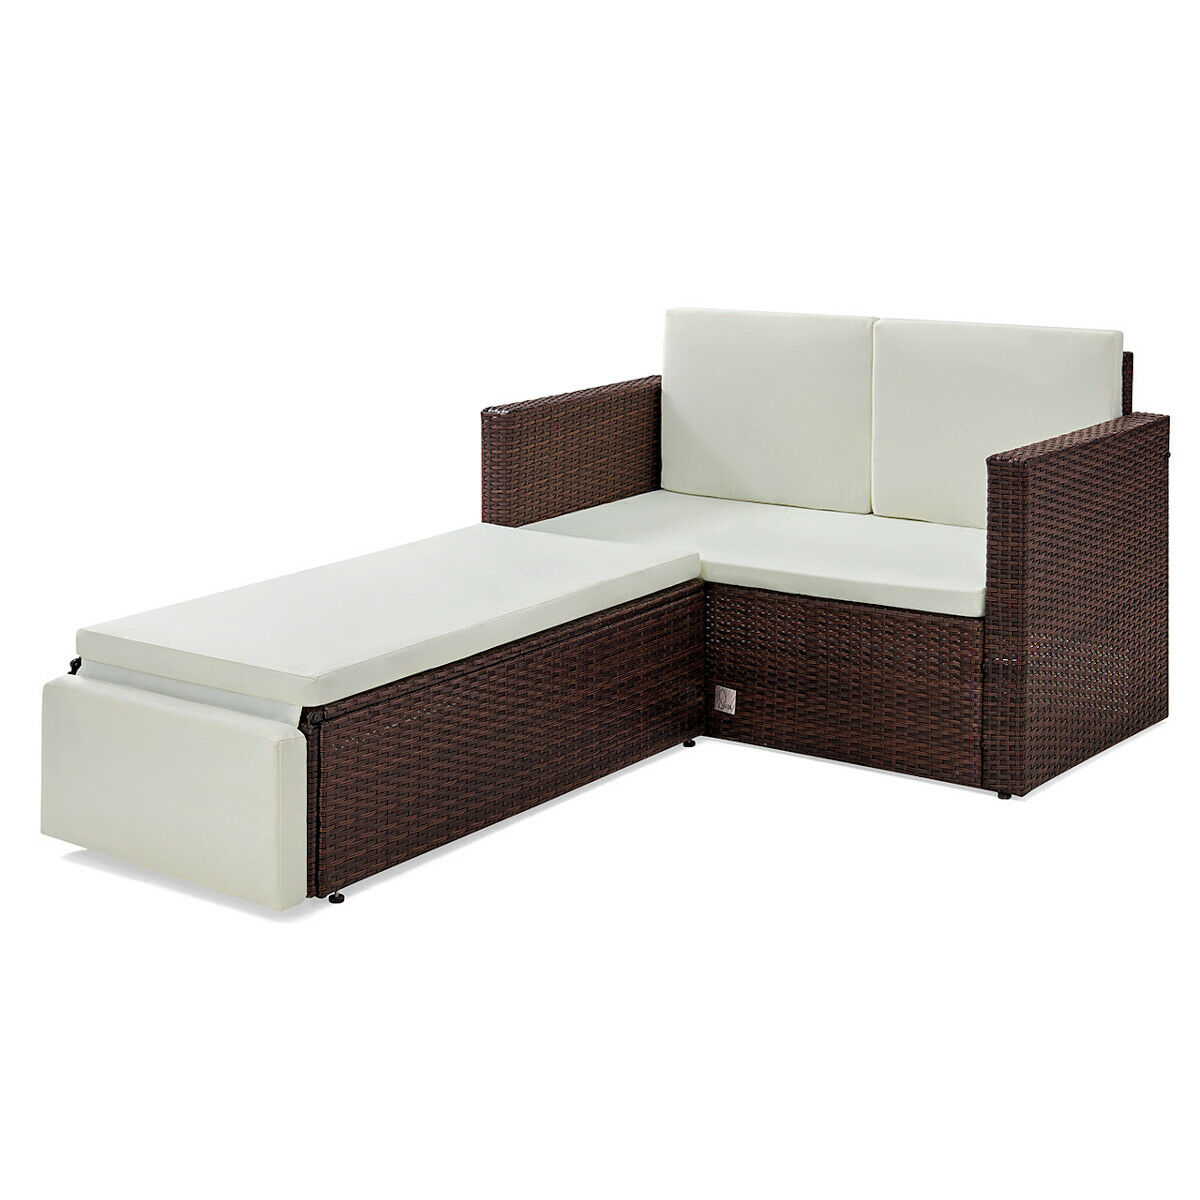 poly rattan lounge braun sofa garnitur garten polyrattan sitzgruppe gartenm bel eur 179 90. Black Bedroom Furniture Sets. Home Design Ideas